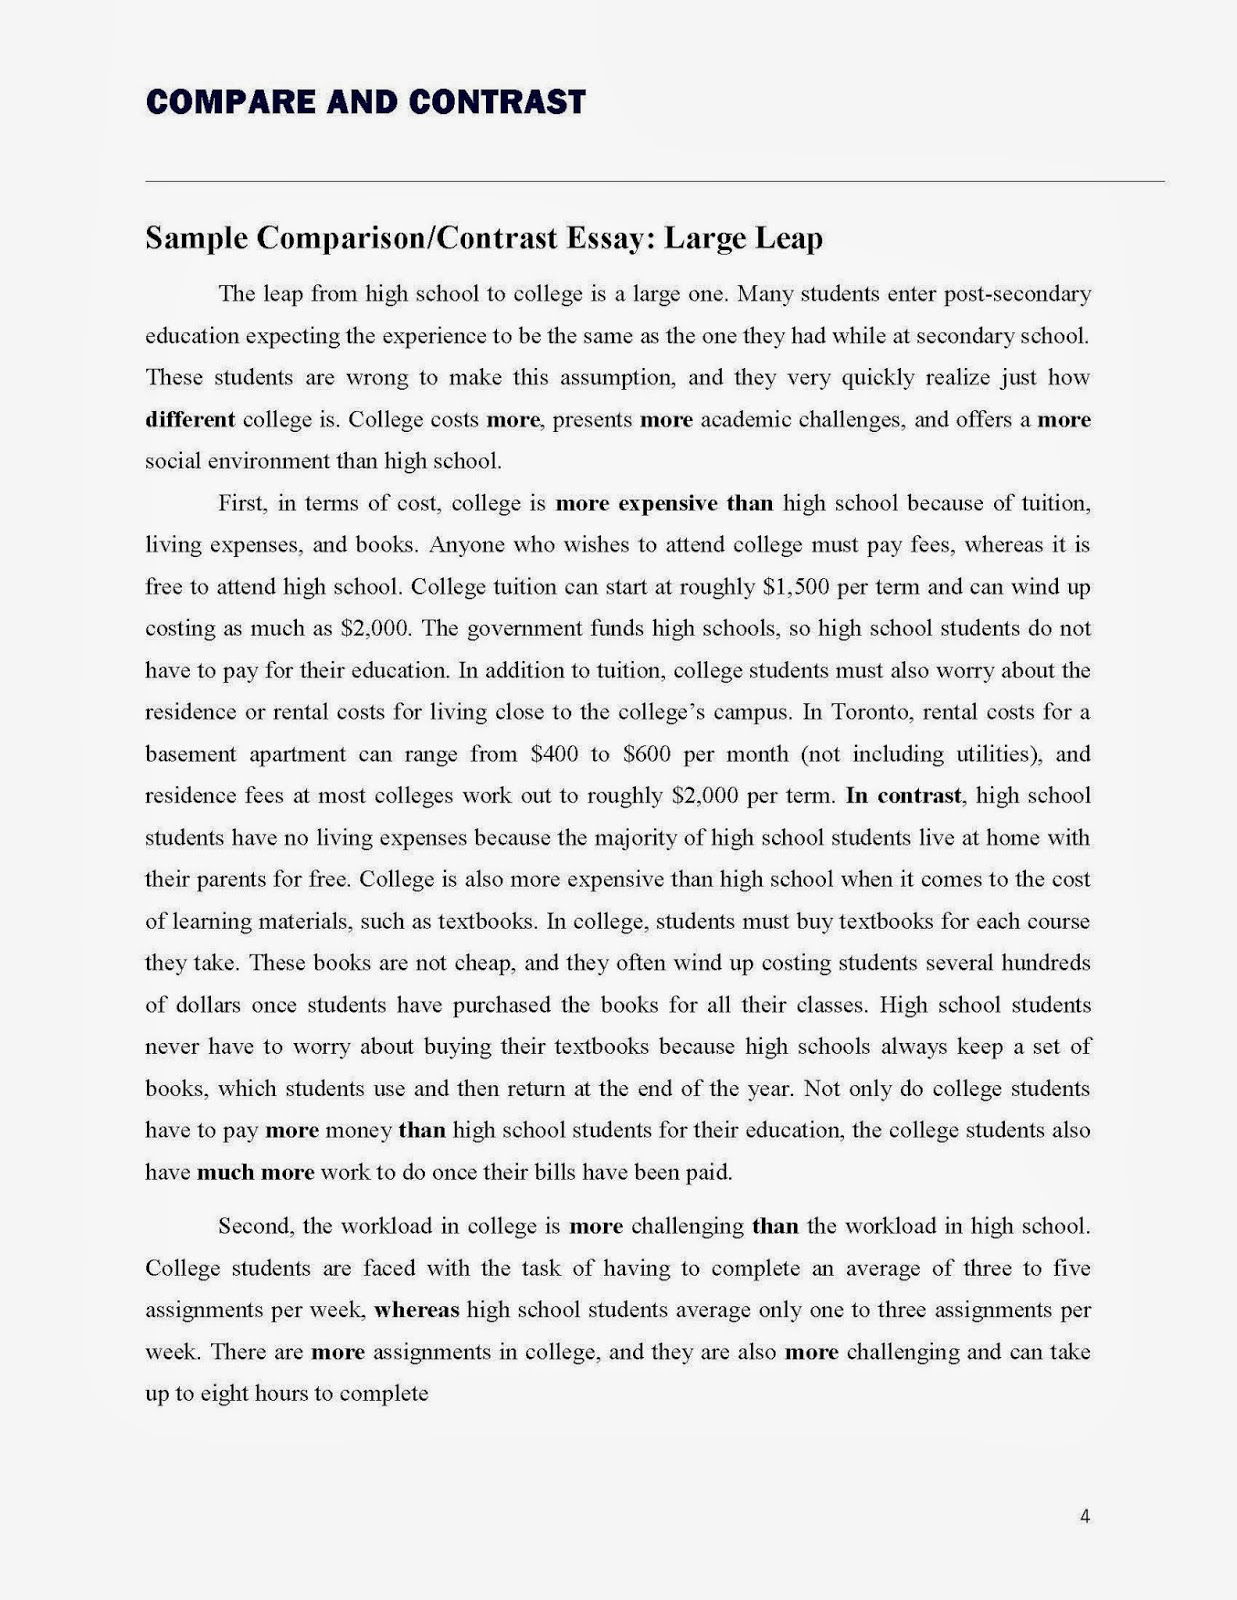 009 Compare20and20contrast20essay Page 4 Good Compare And Contrast Essay Topics Exceptional For Elementary Students In The Medical Field Full